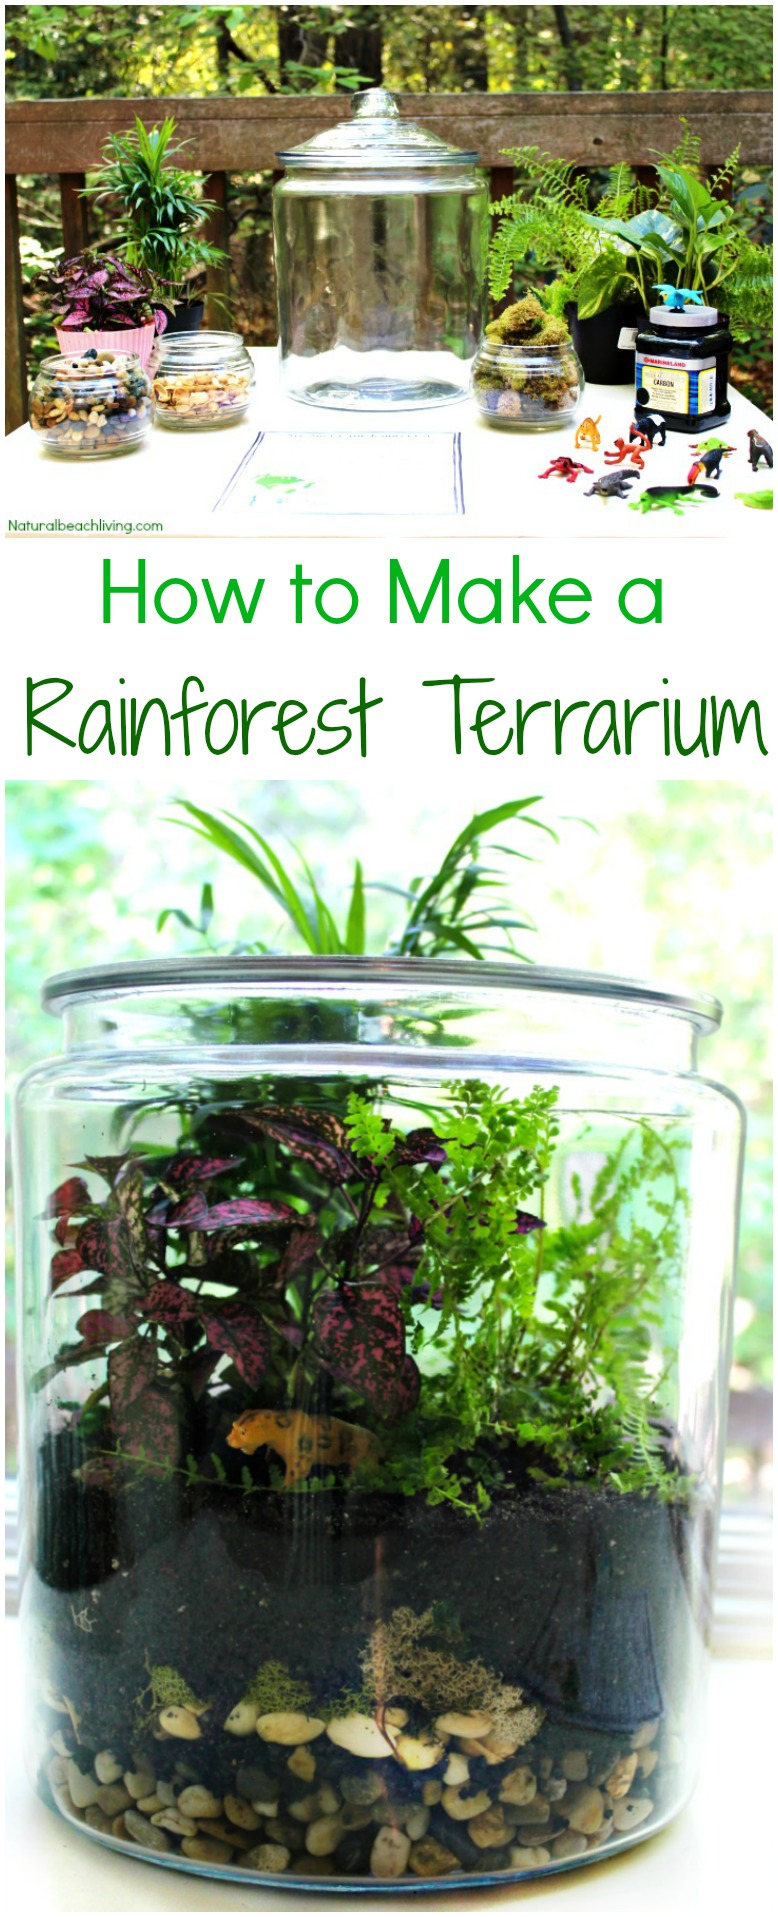 How to Make The Best Rainforest Terrarium with Kids, Learn about the Rainforest Animal Habitat, ecosystem, Water Cycle, Amazing Hands-on activity for kids